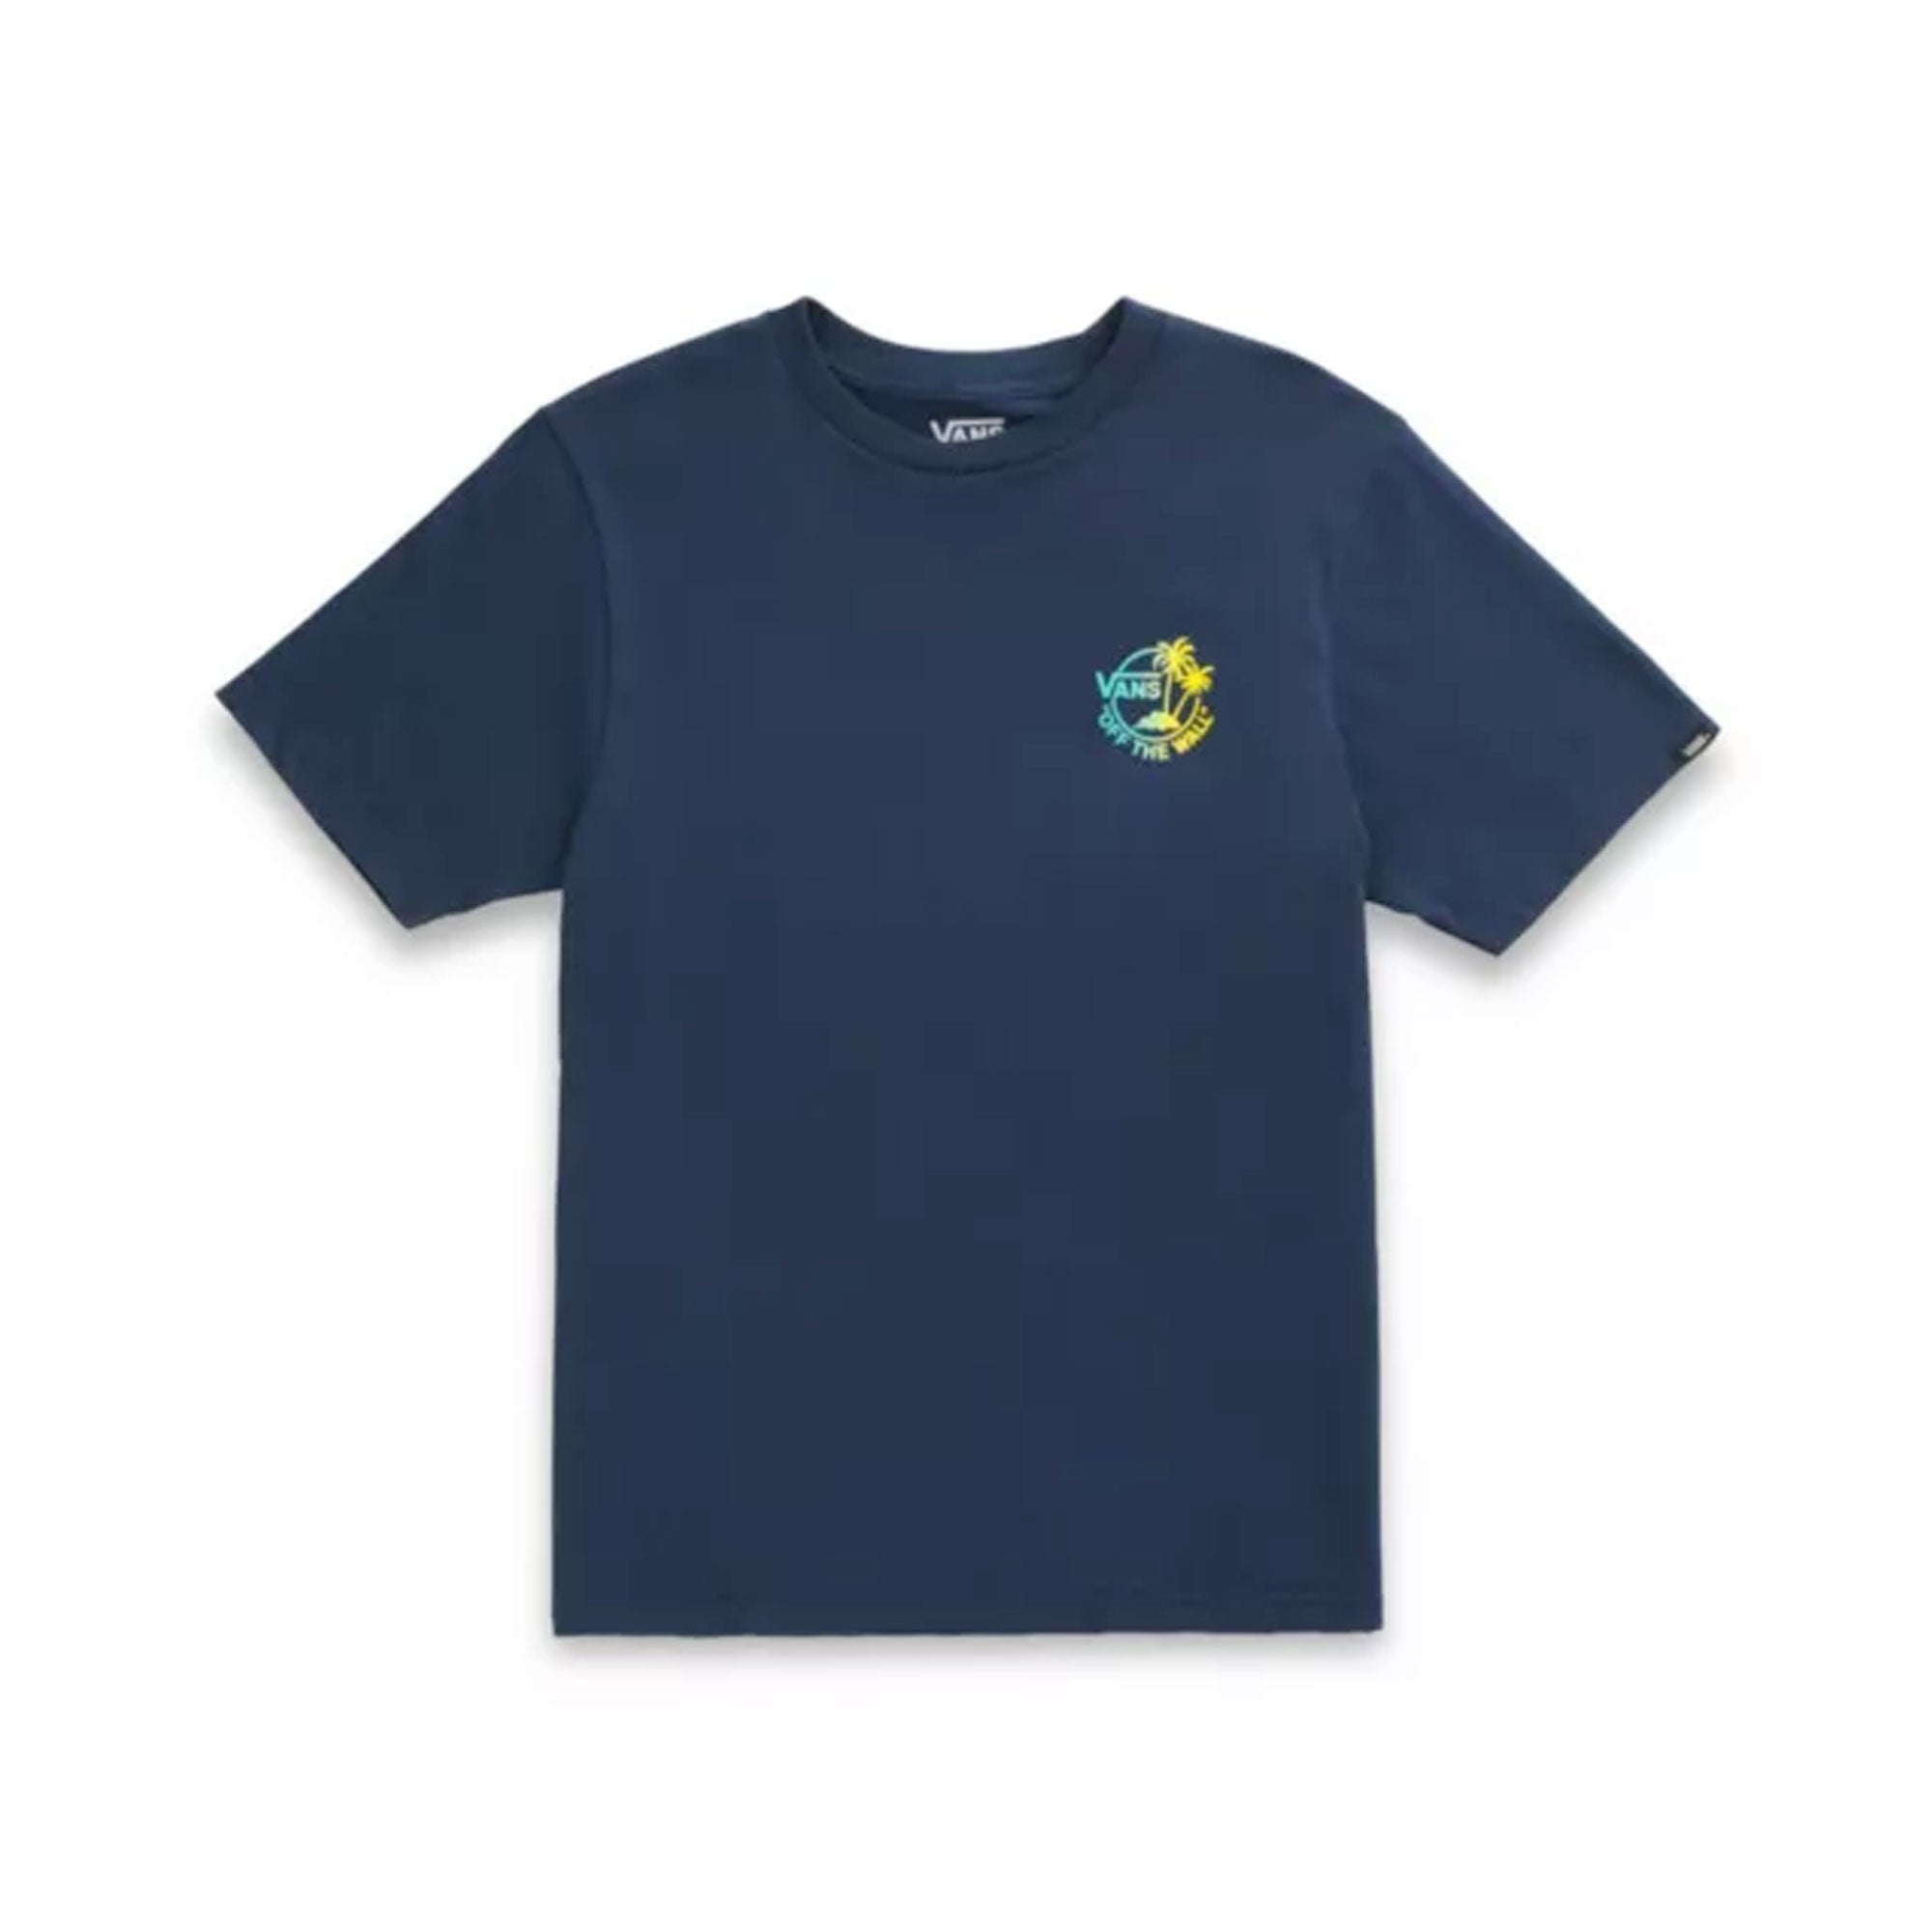 Vans Mini Dual Palm Boy's S/S T-Shirt